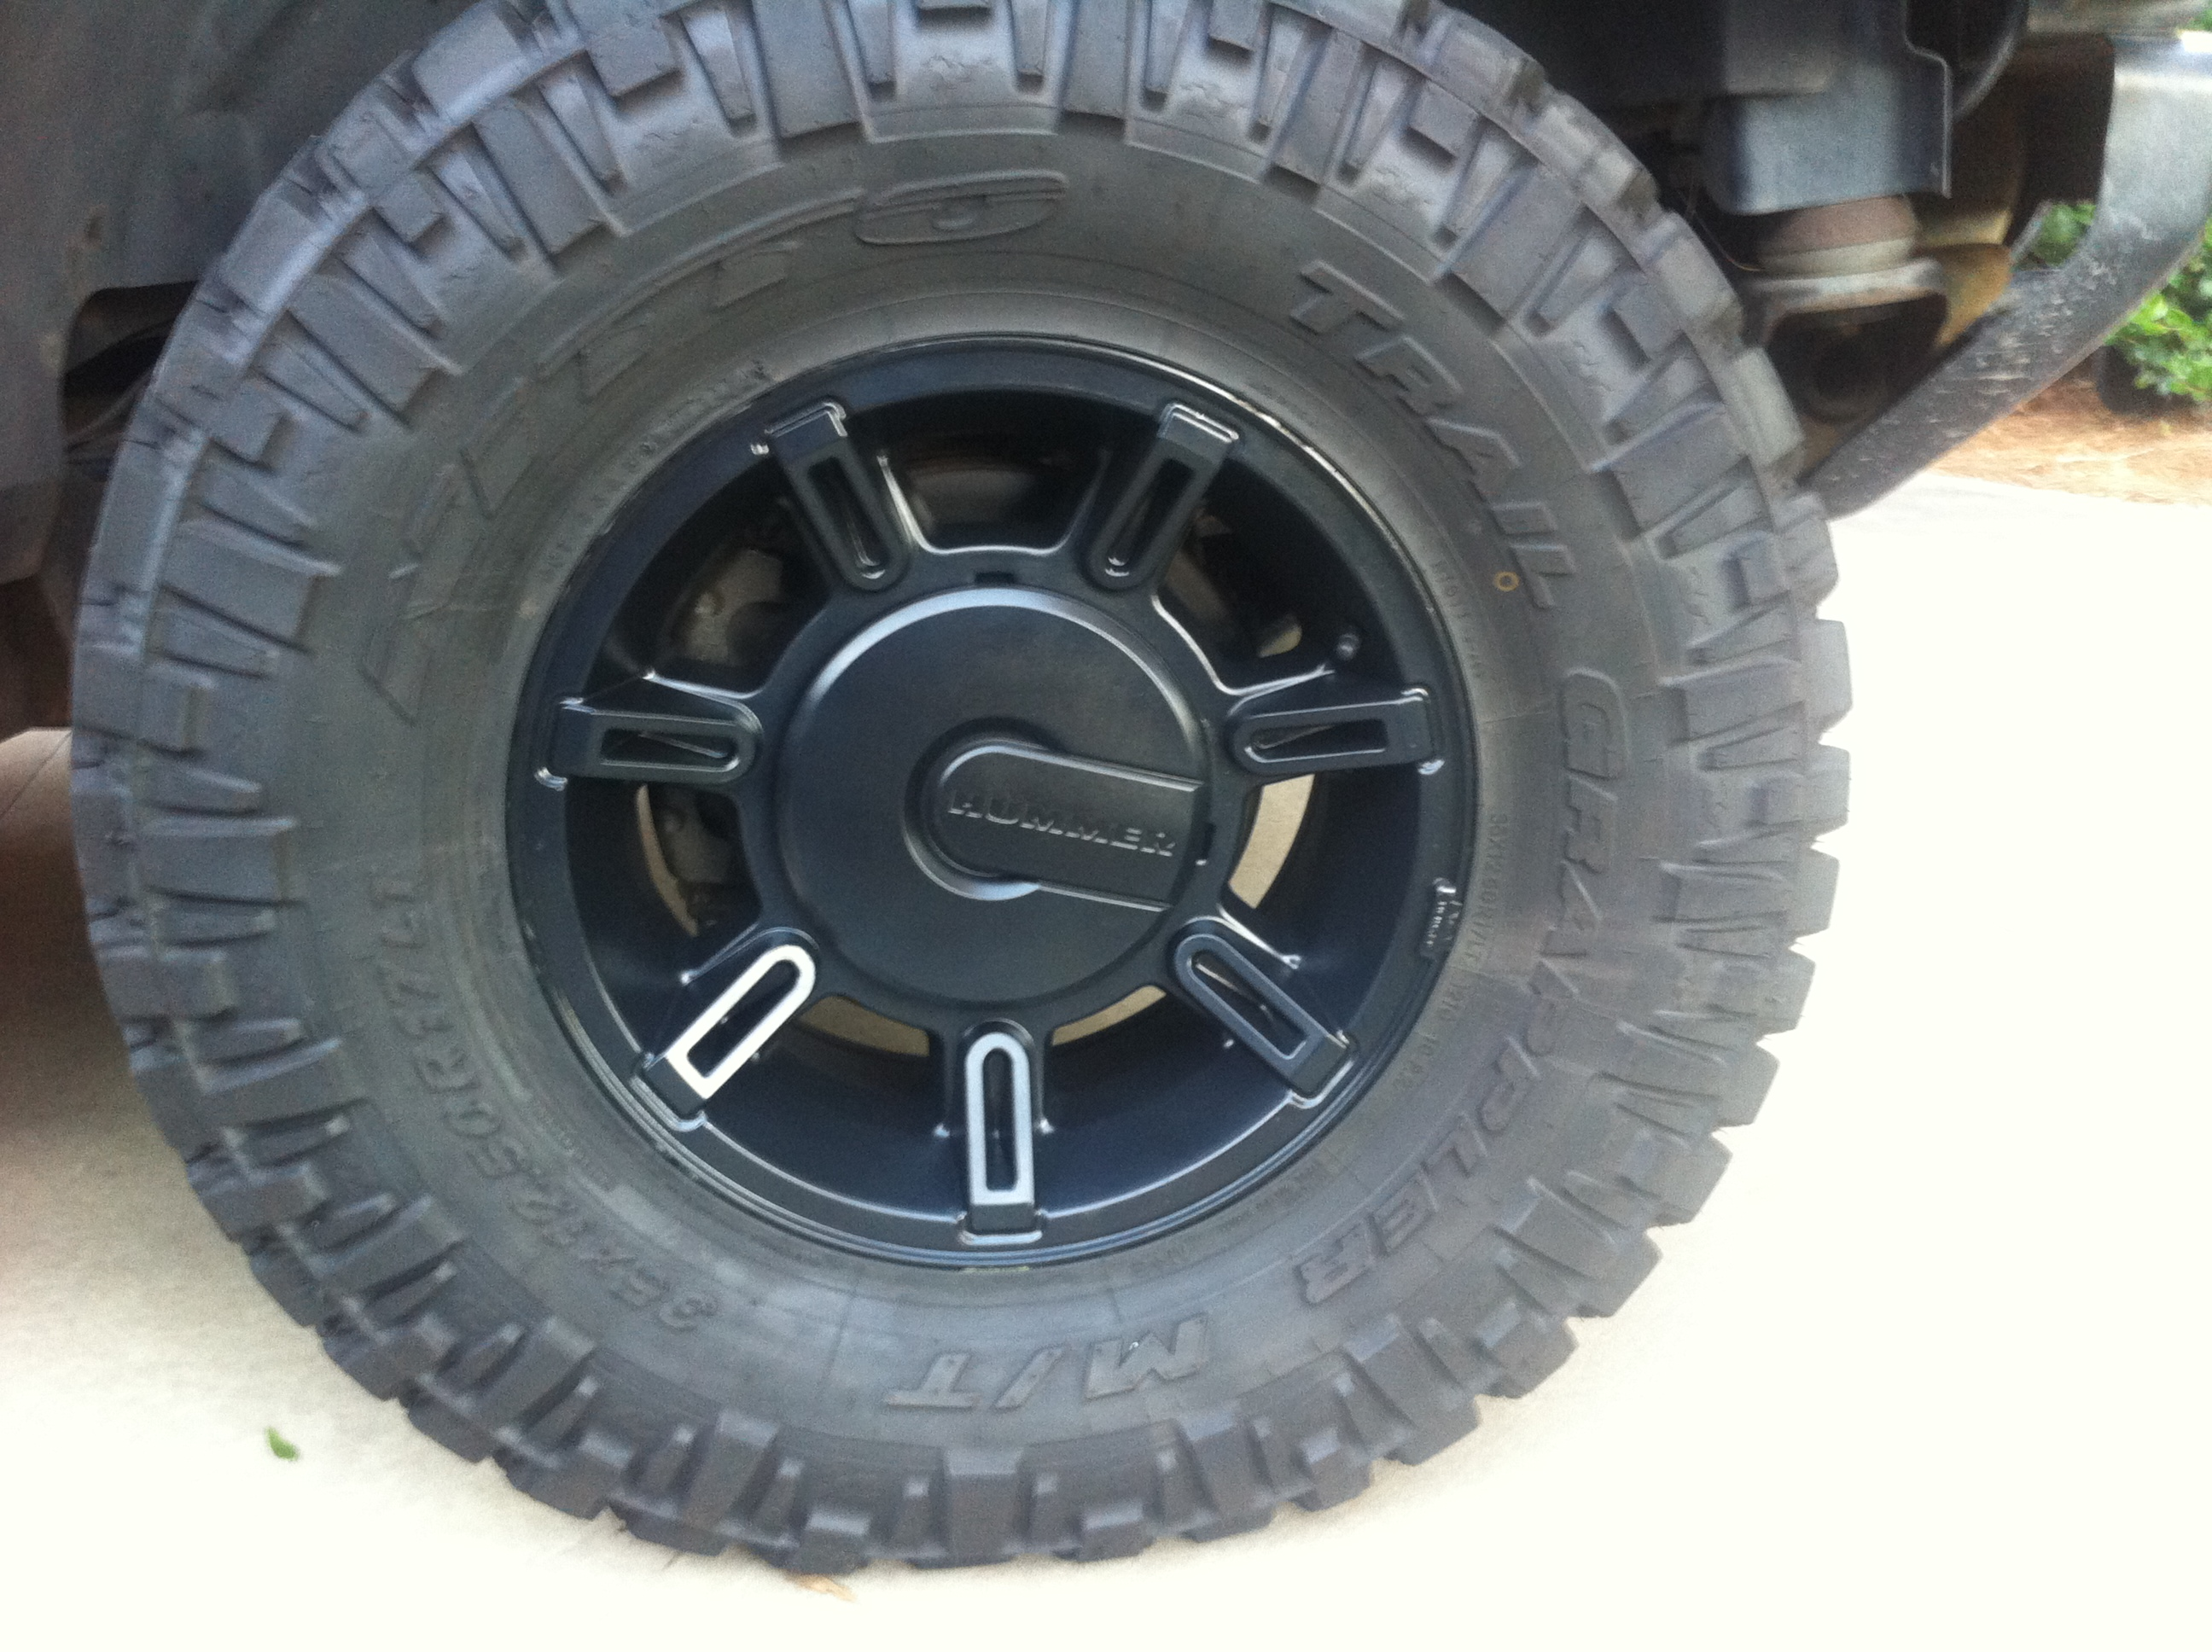 For sale Hummer H2 2004 Hummer Forums Enthusiast Forum for